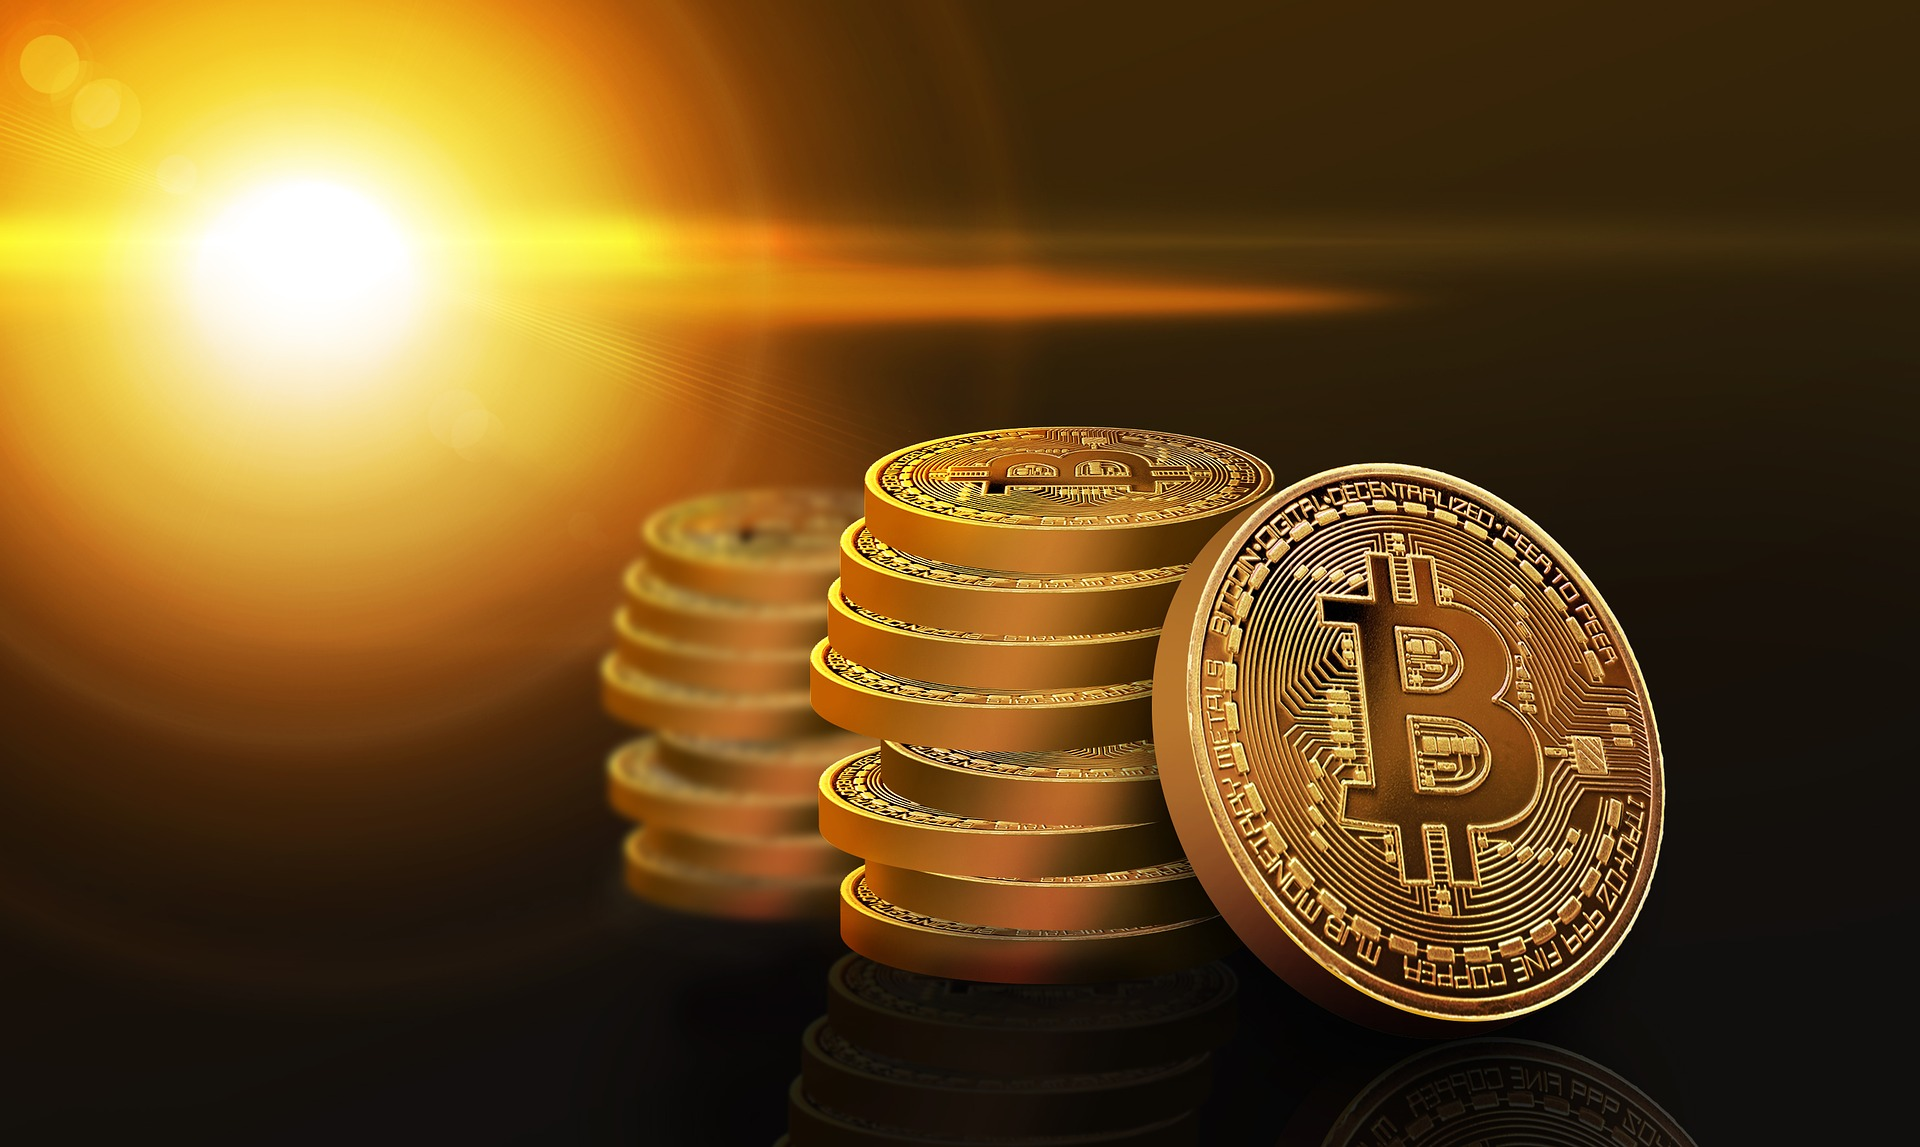 Bitcoin: These 3 metrics are important to keep track of